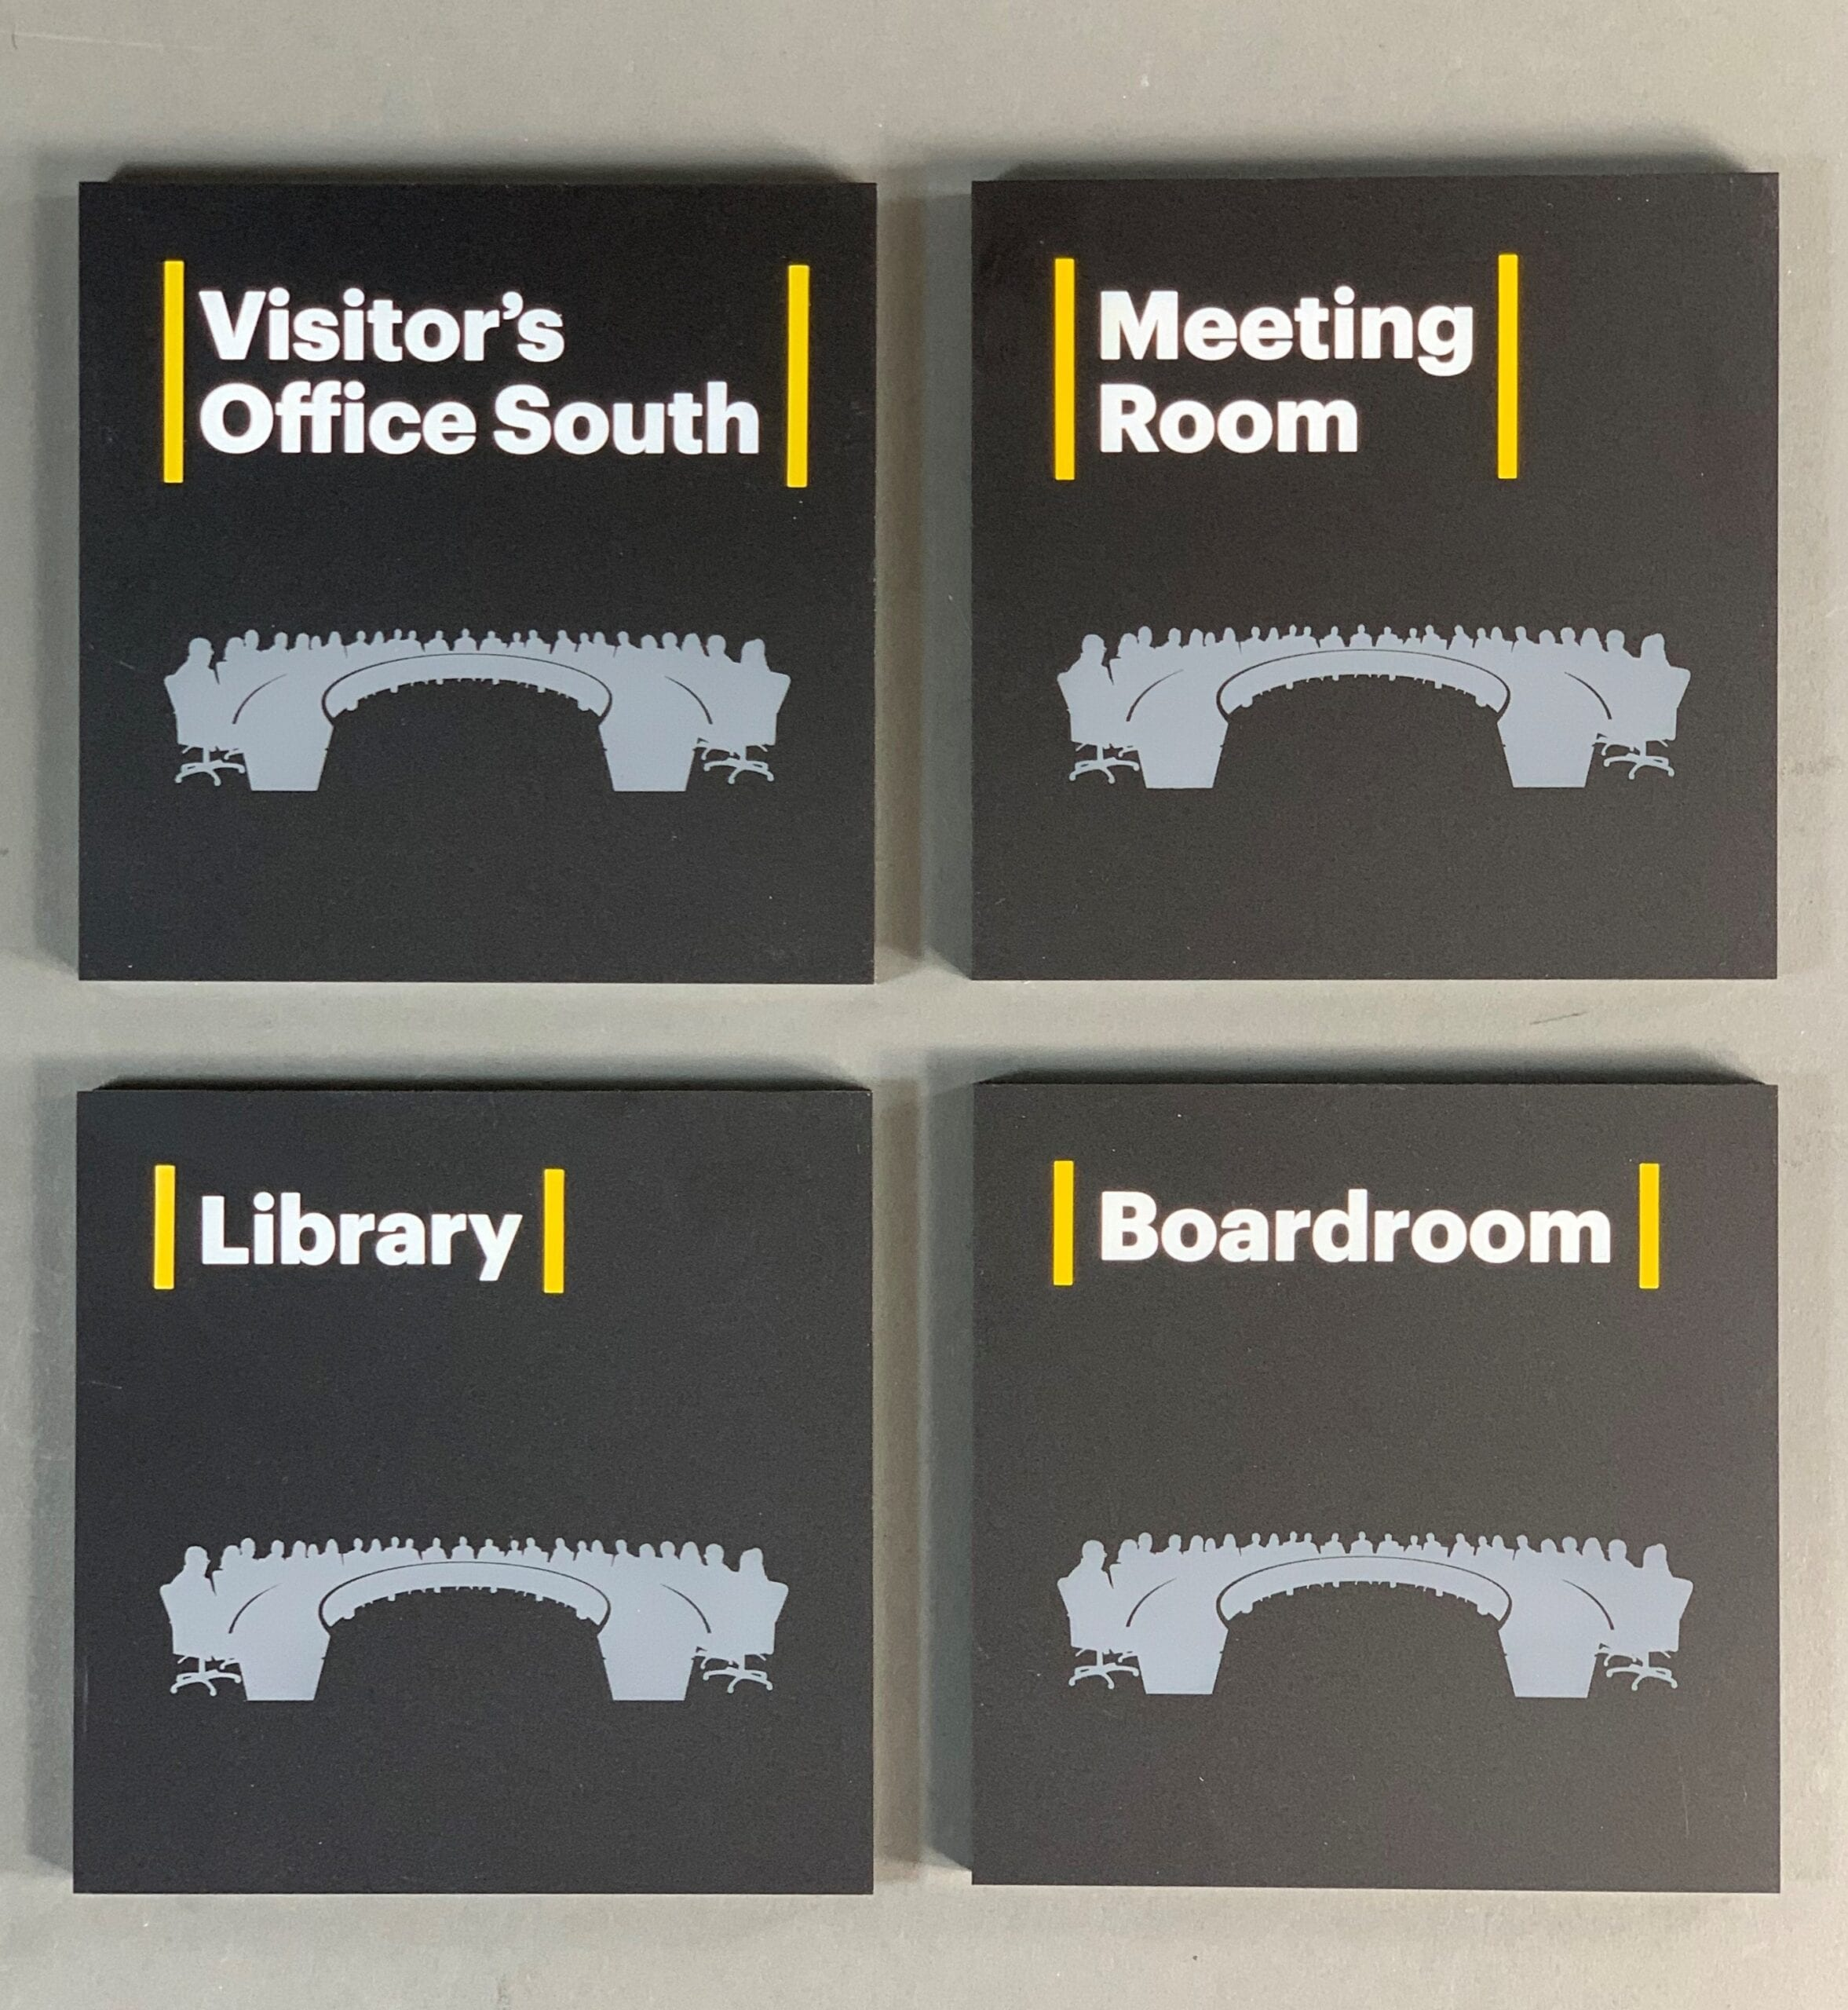 Fully customize signage for your building, utilizing our top notch manufacturing capabilities ensures excellent design and finish.